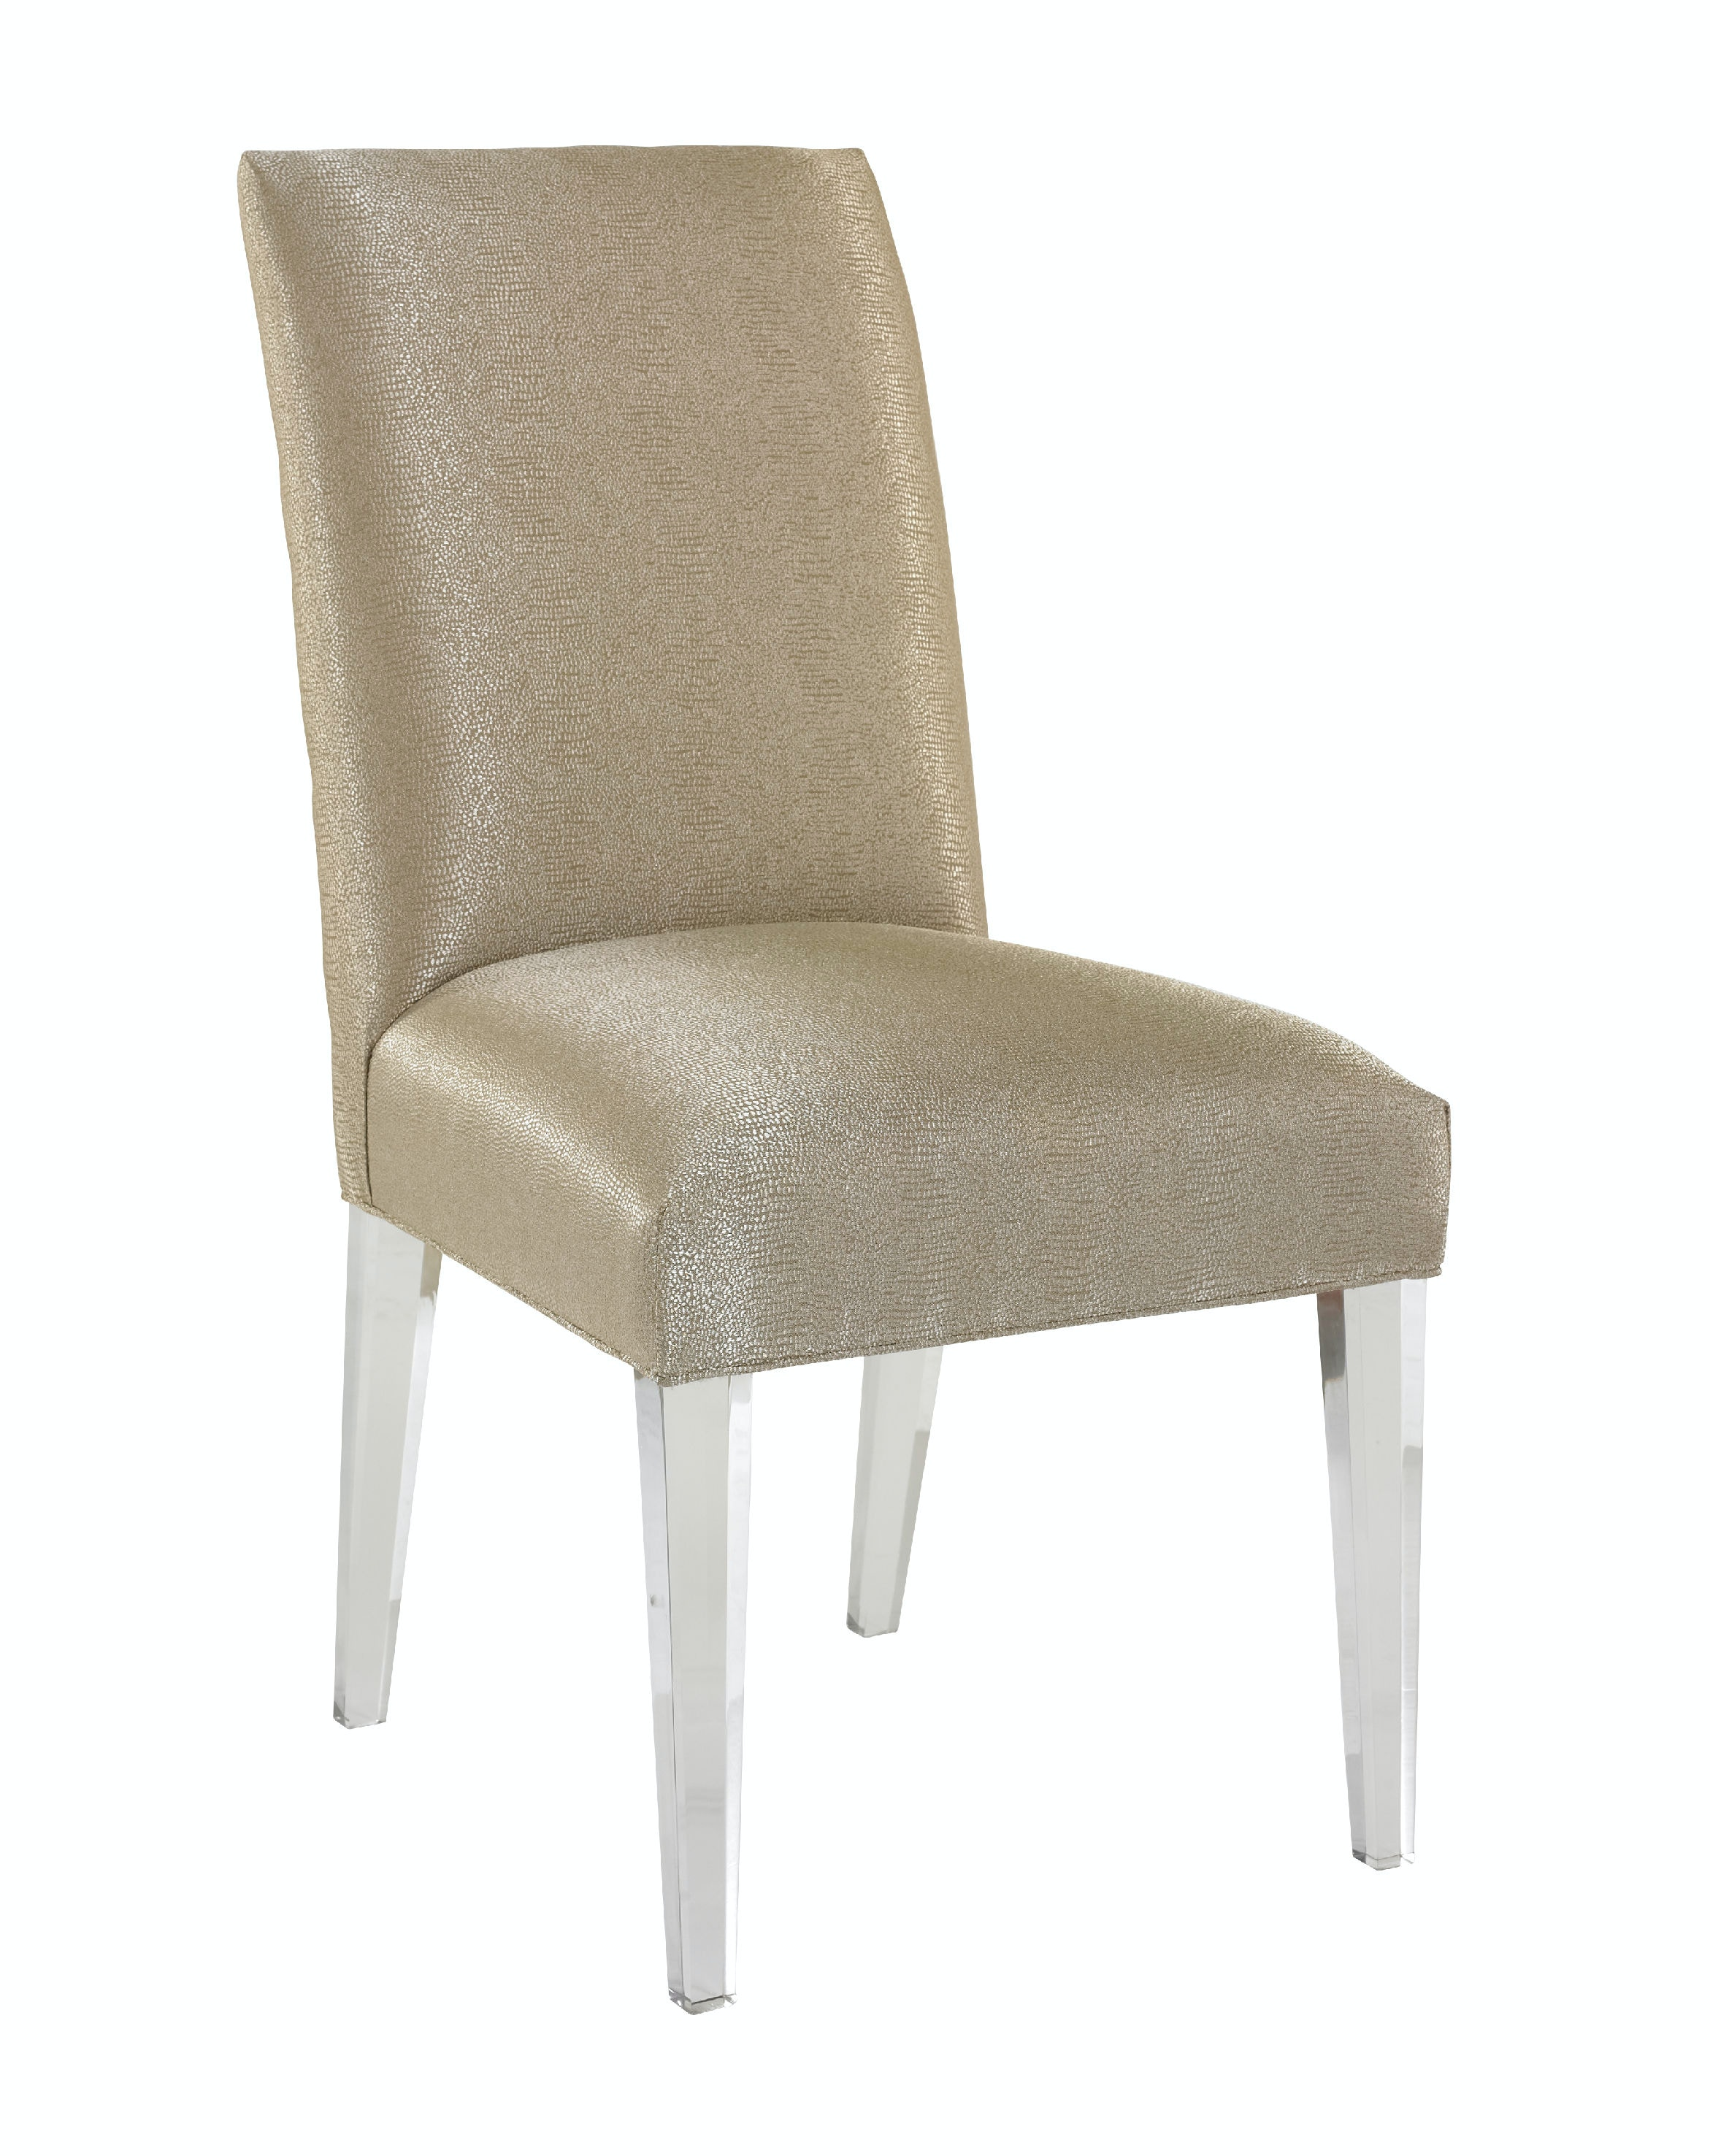 dining room chairs home goods single futon chair bed designmaster electra side 01 616